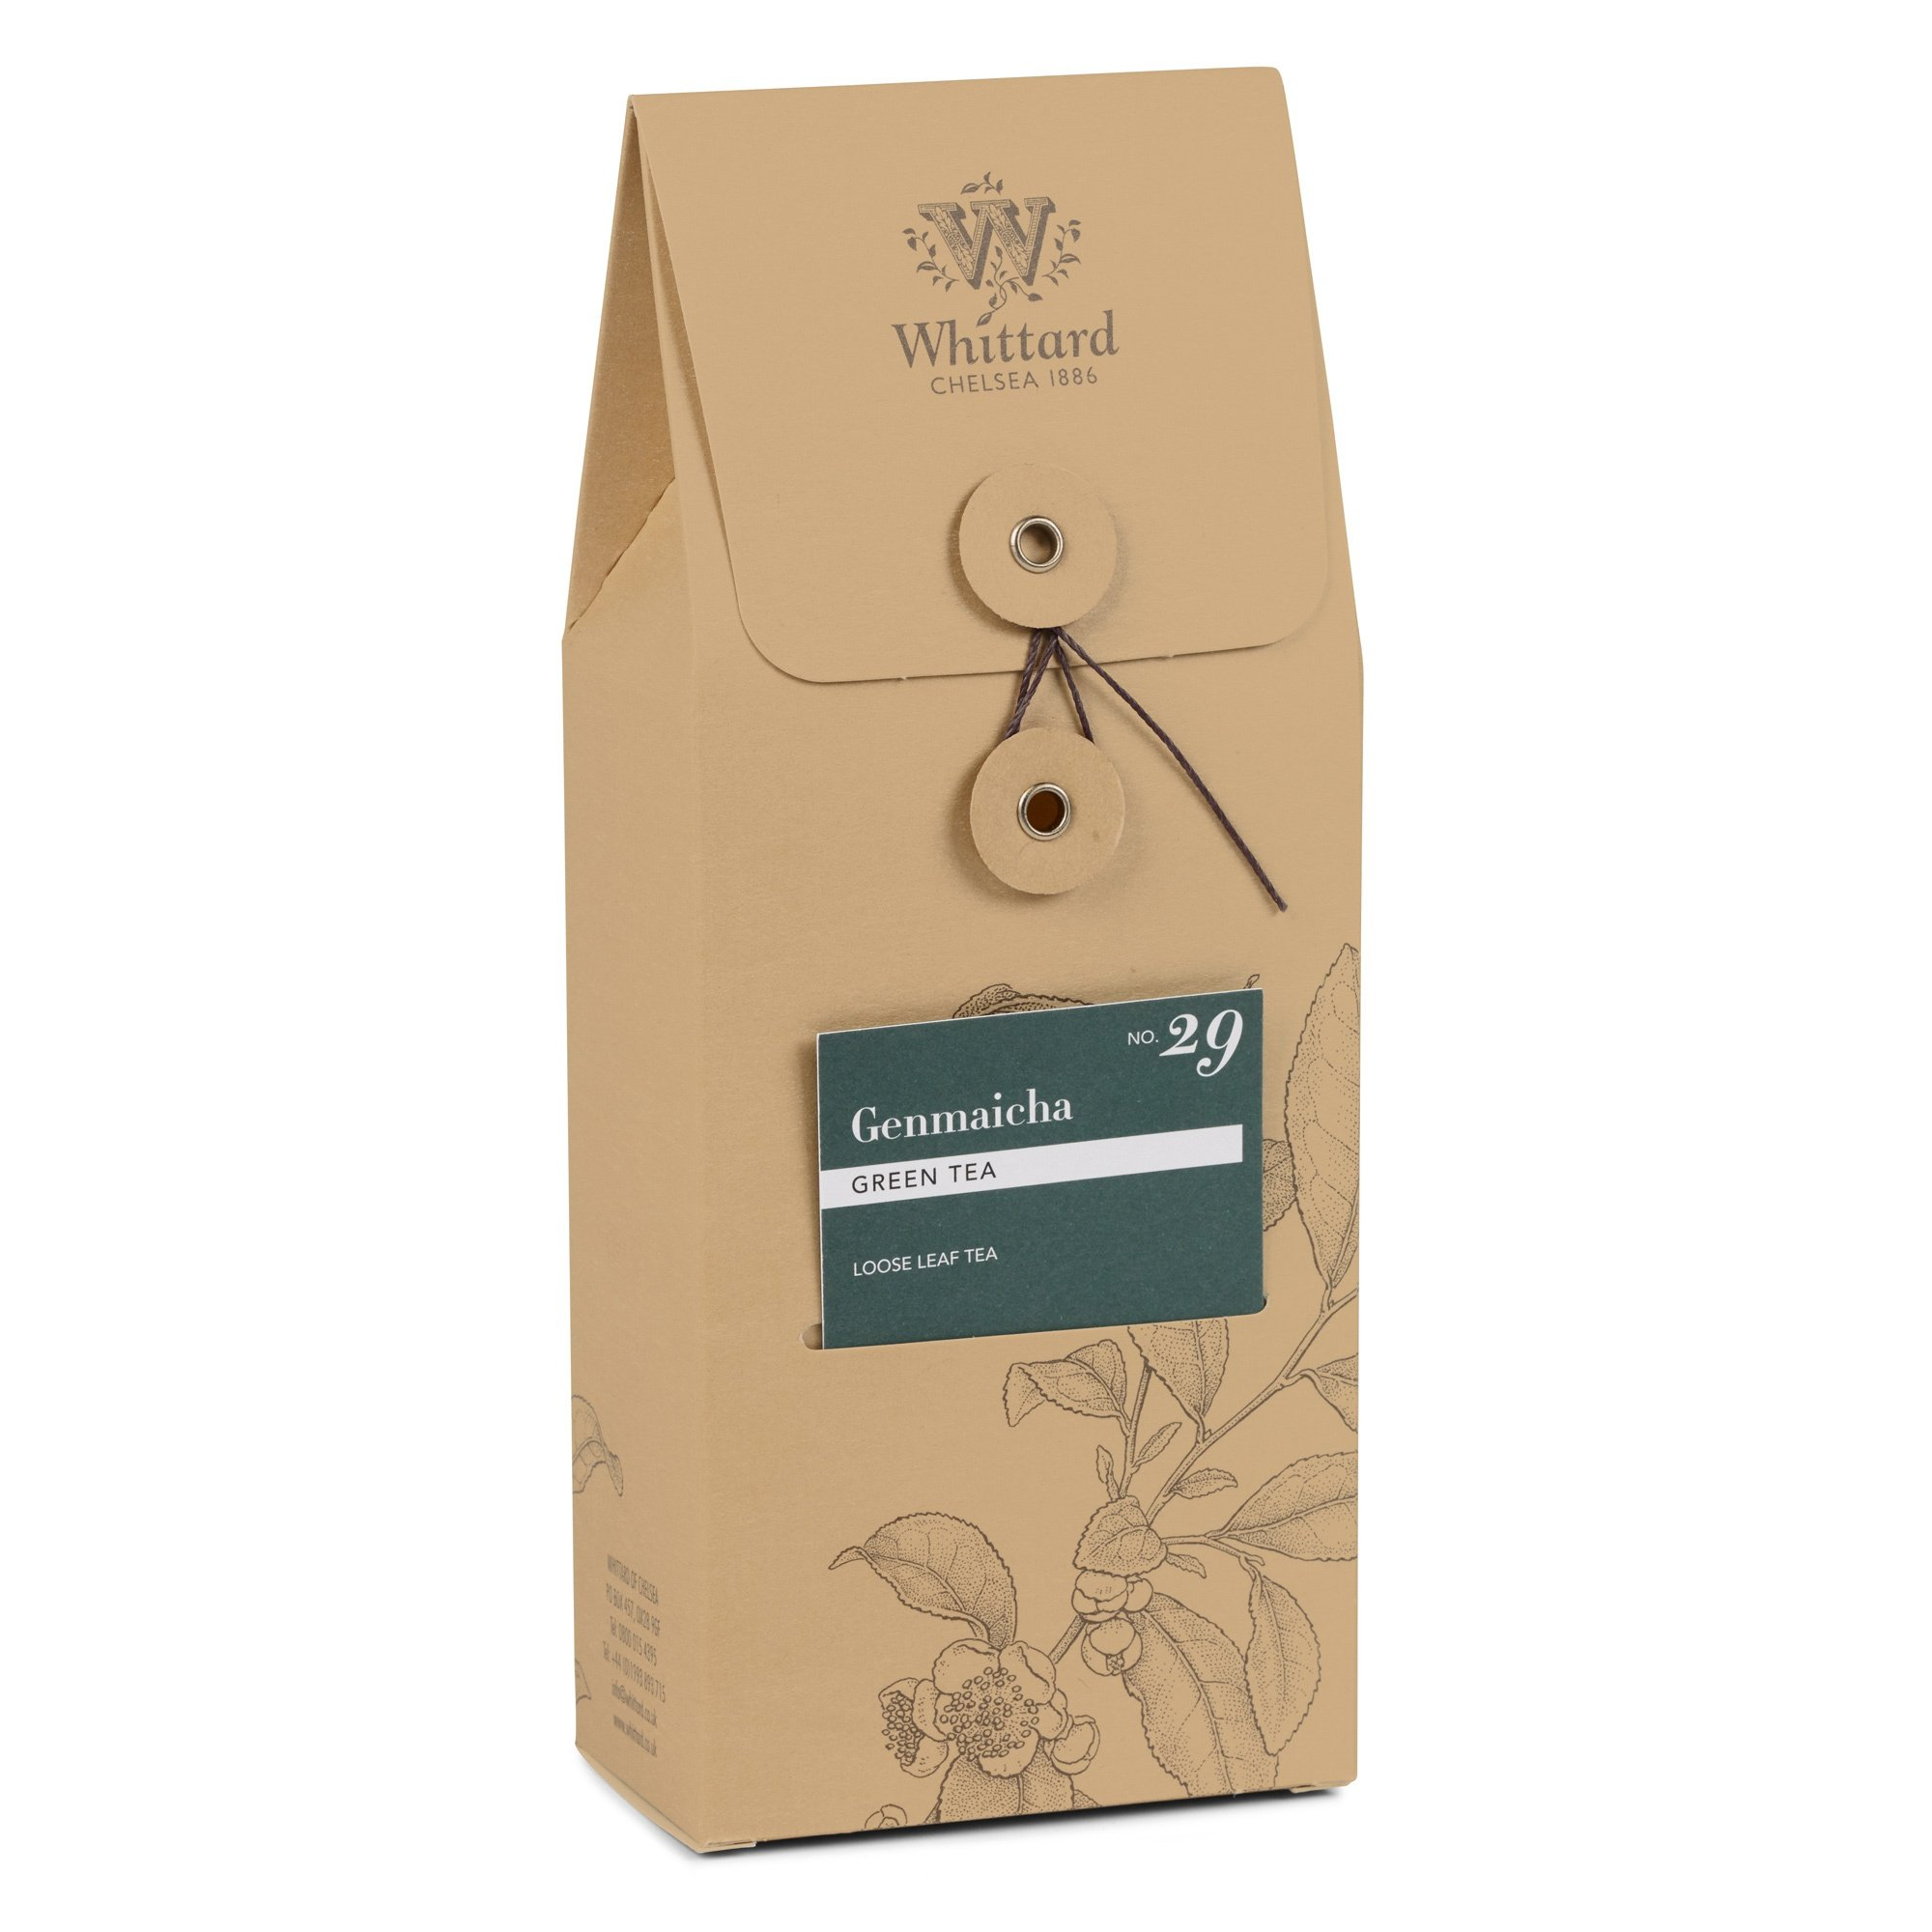 Whittard Tea Genmaicha Loose Leaf 50g by Whittard